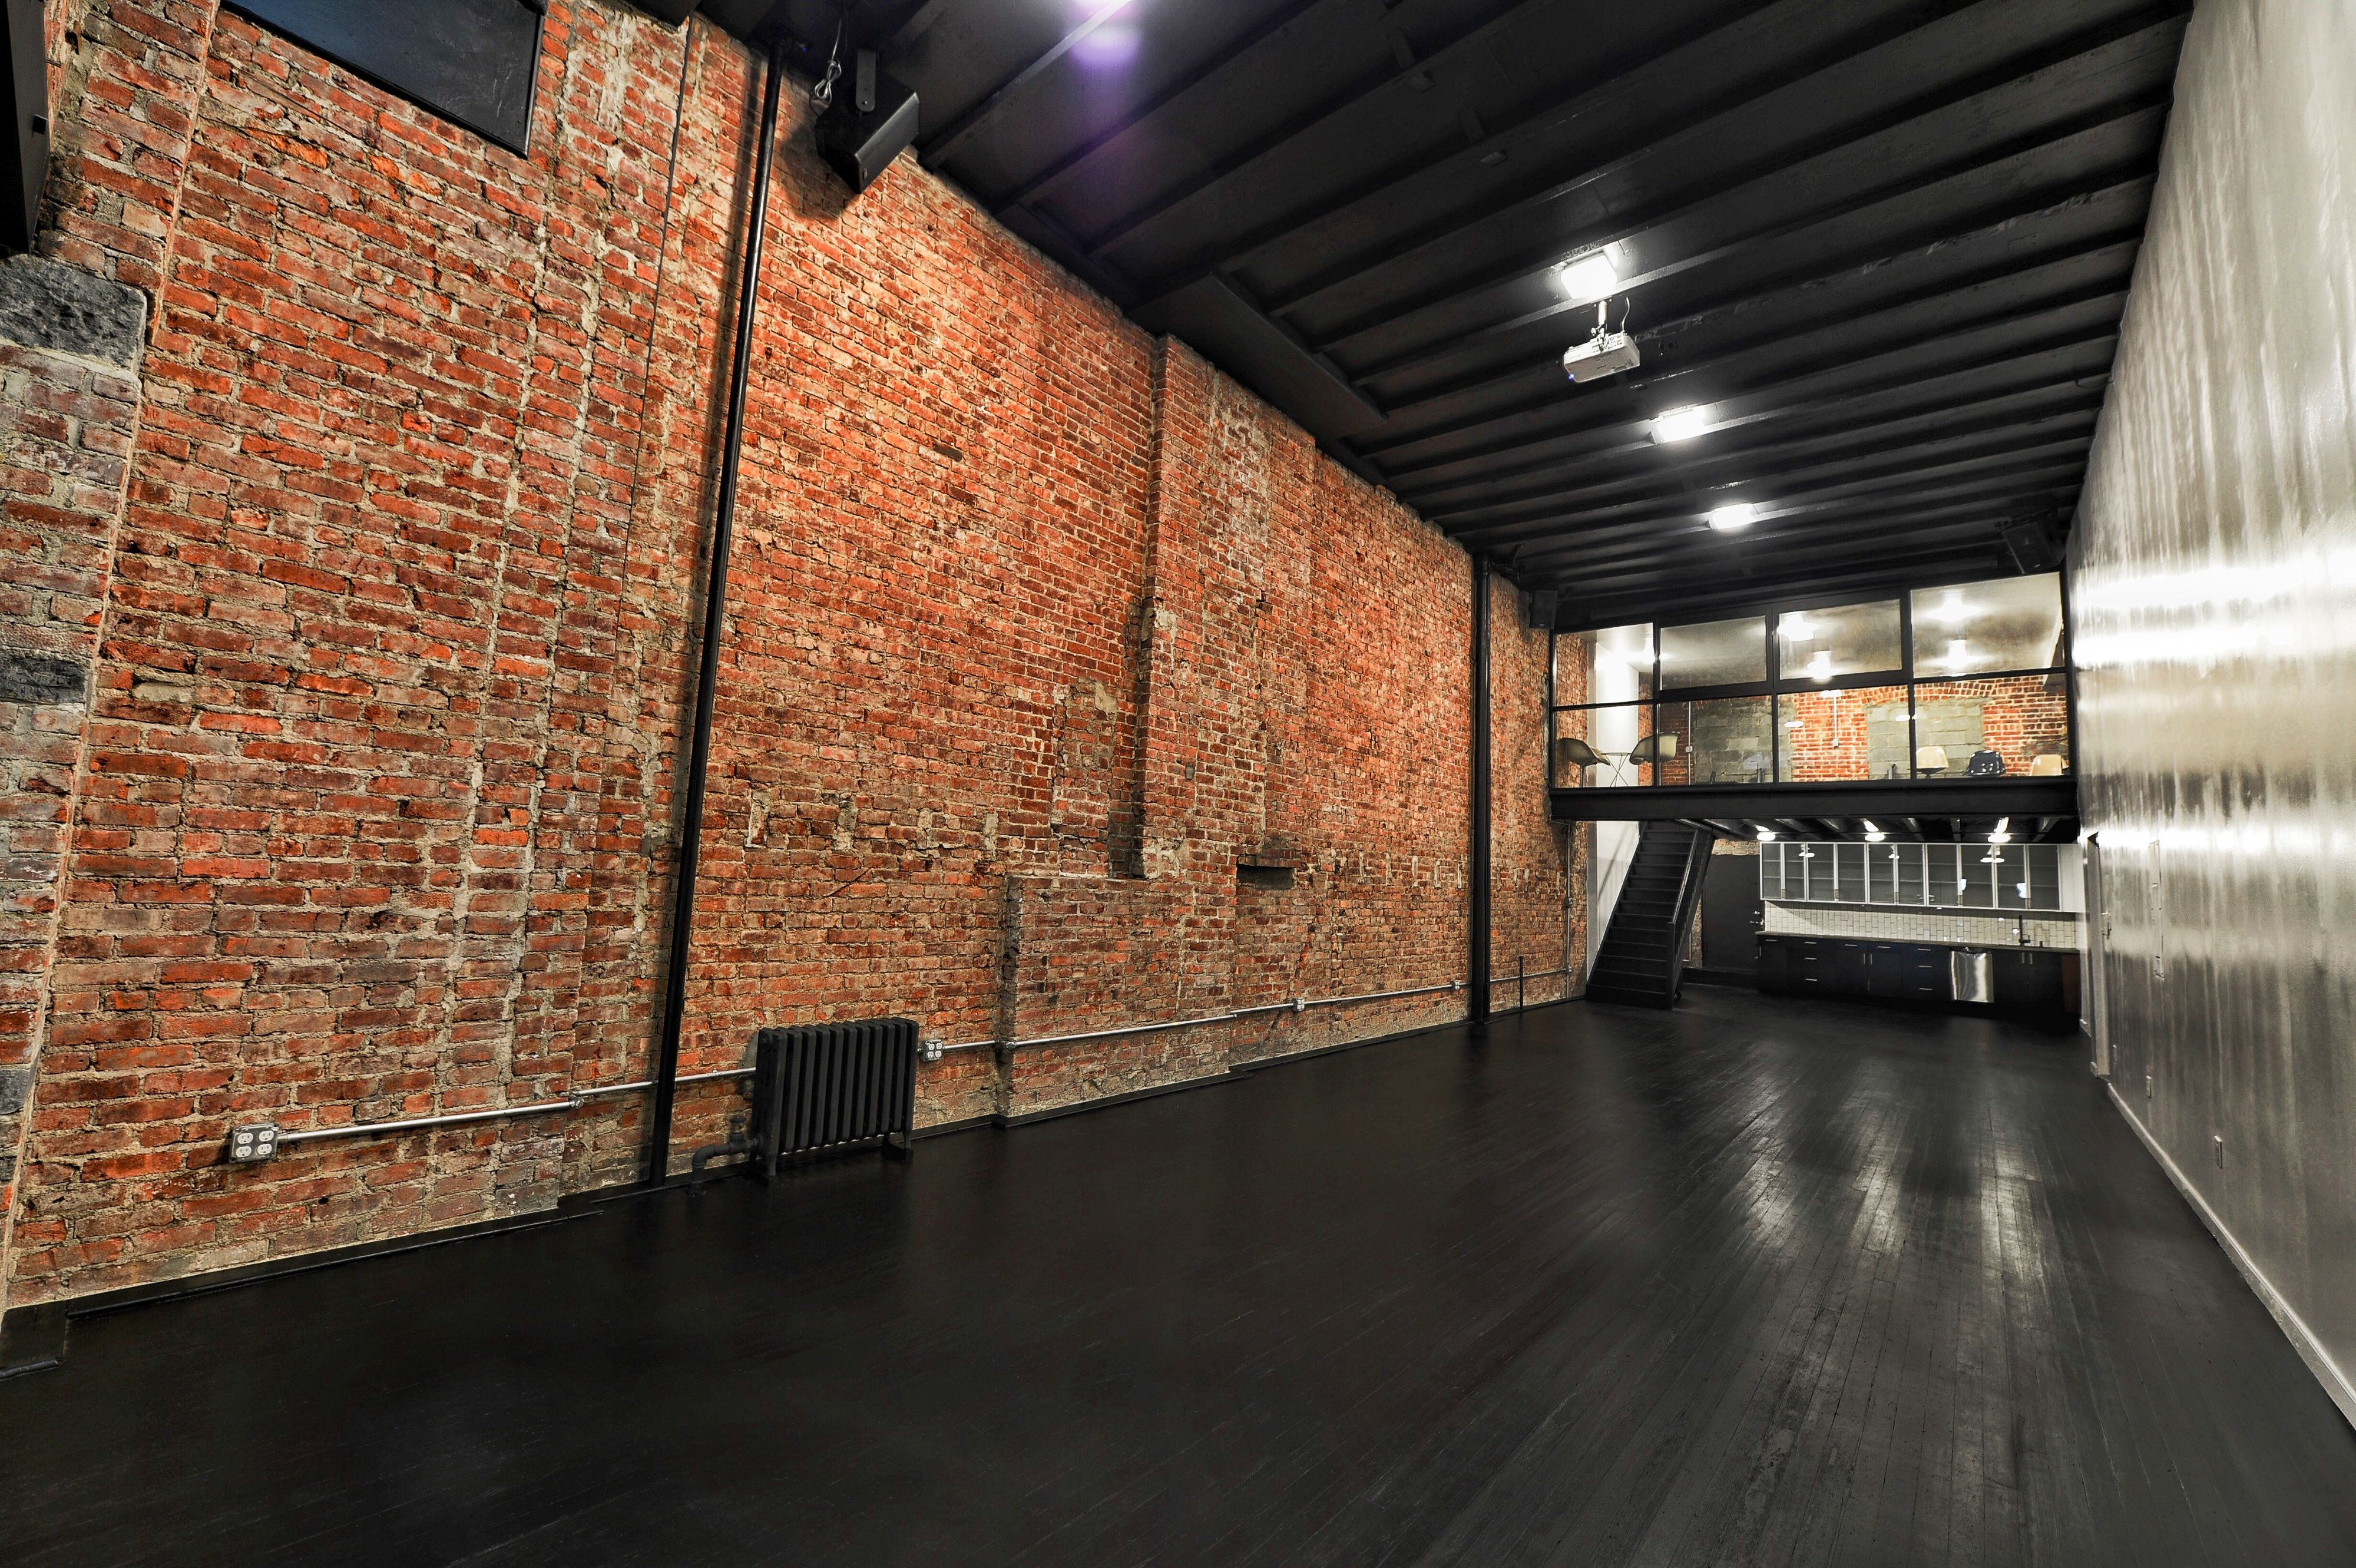 A Creative Loft Studio E Featuring Warm Red Brick Walls Black Wood Floors High Ceilings Large Windows Skylight Creating An Open Modern And